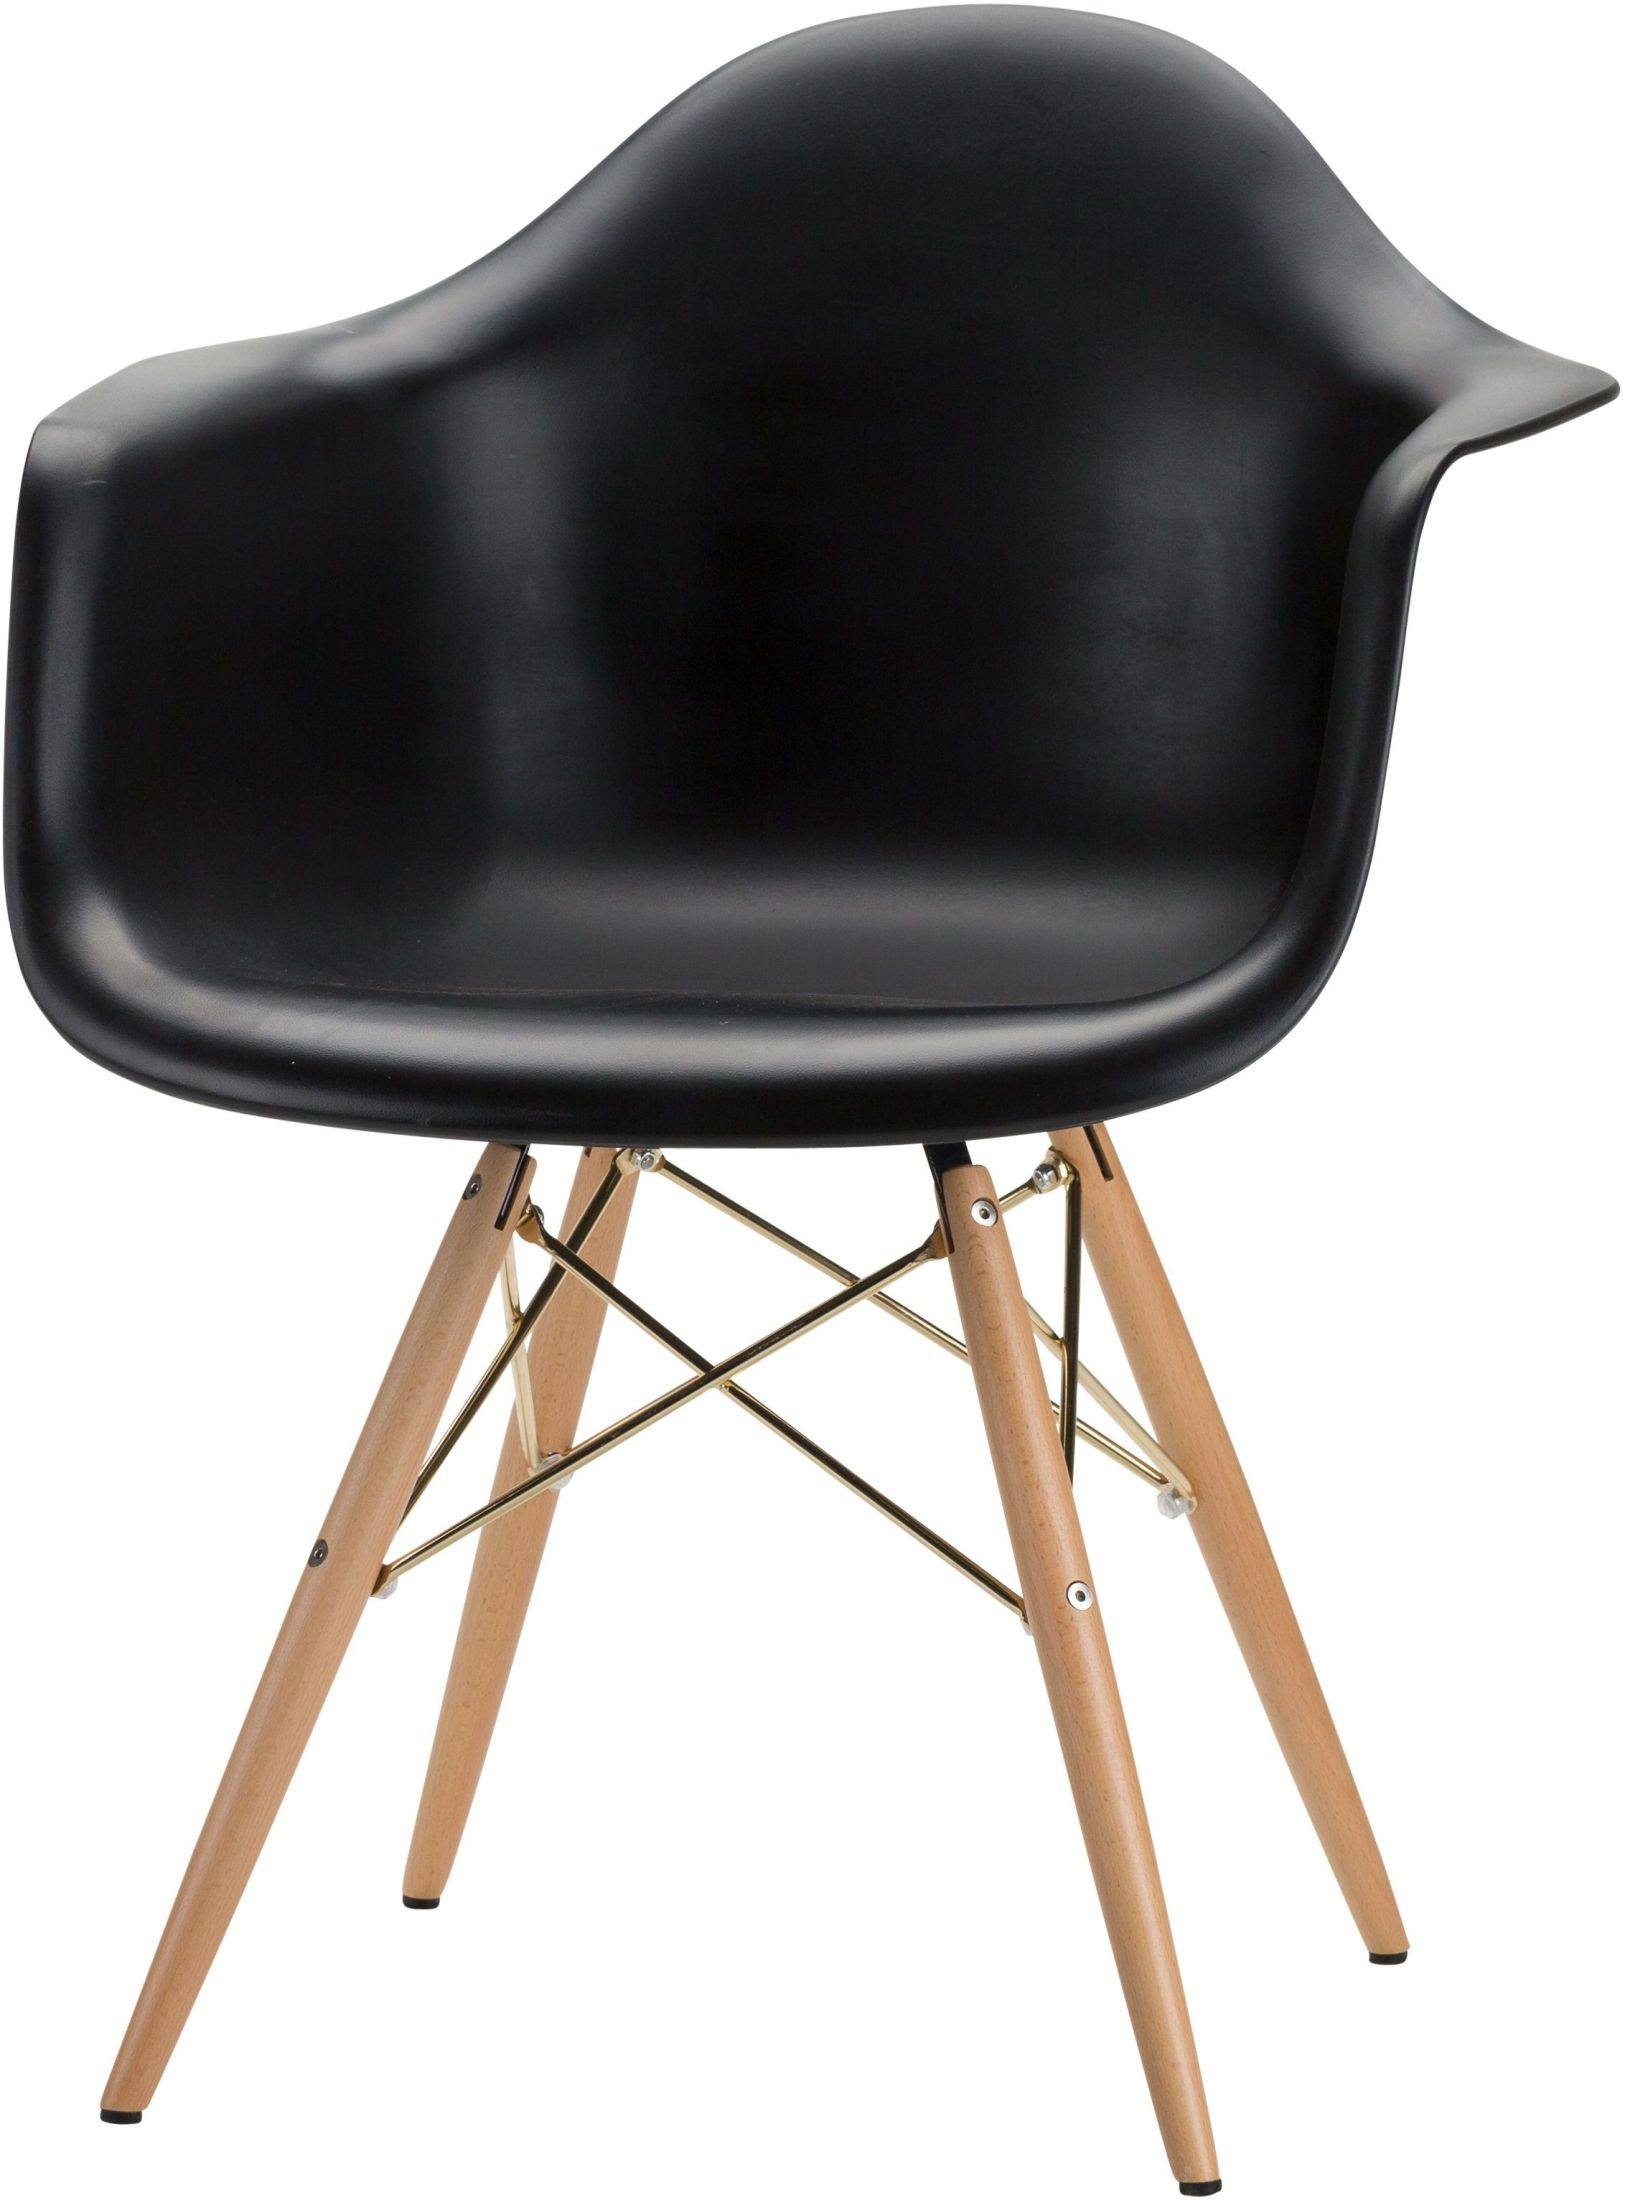 gold dining chairs medical chair lift earnest black and hgzx392 nuevo